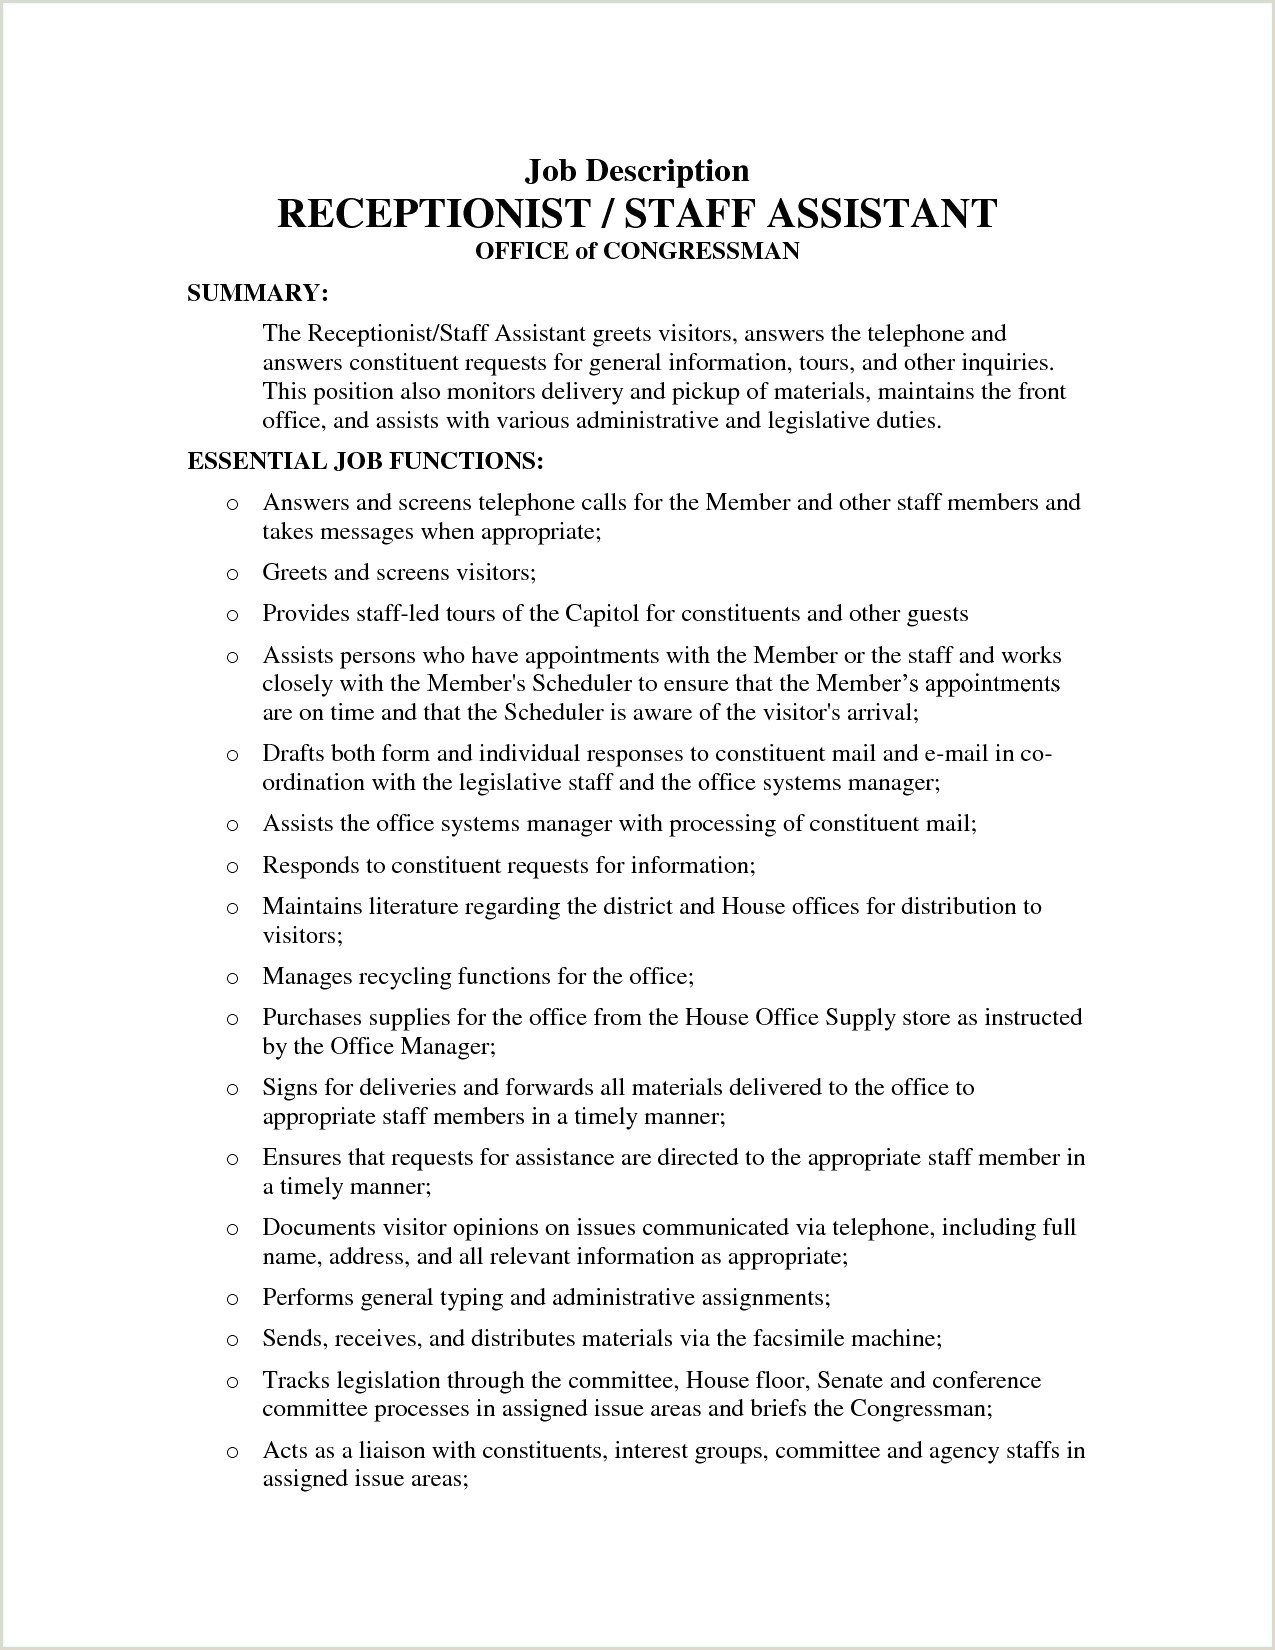 Cv format for Receptionist Job Reception Job Description Resume Best Resume Samples for